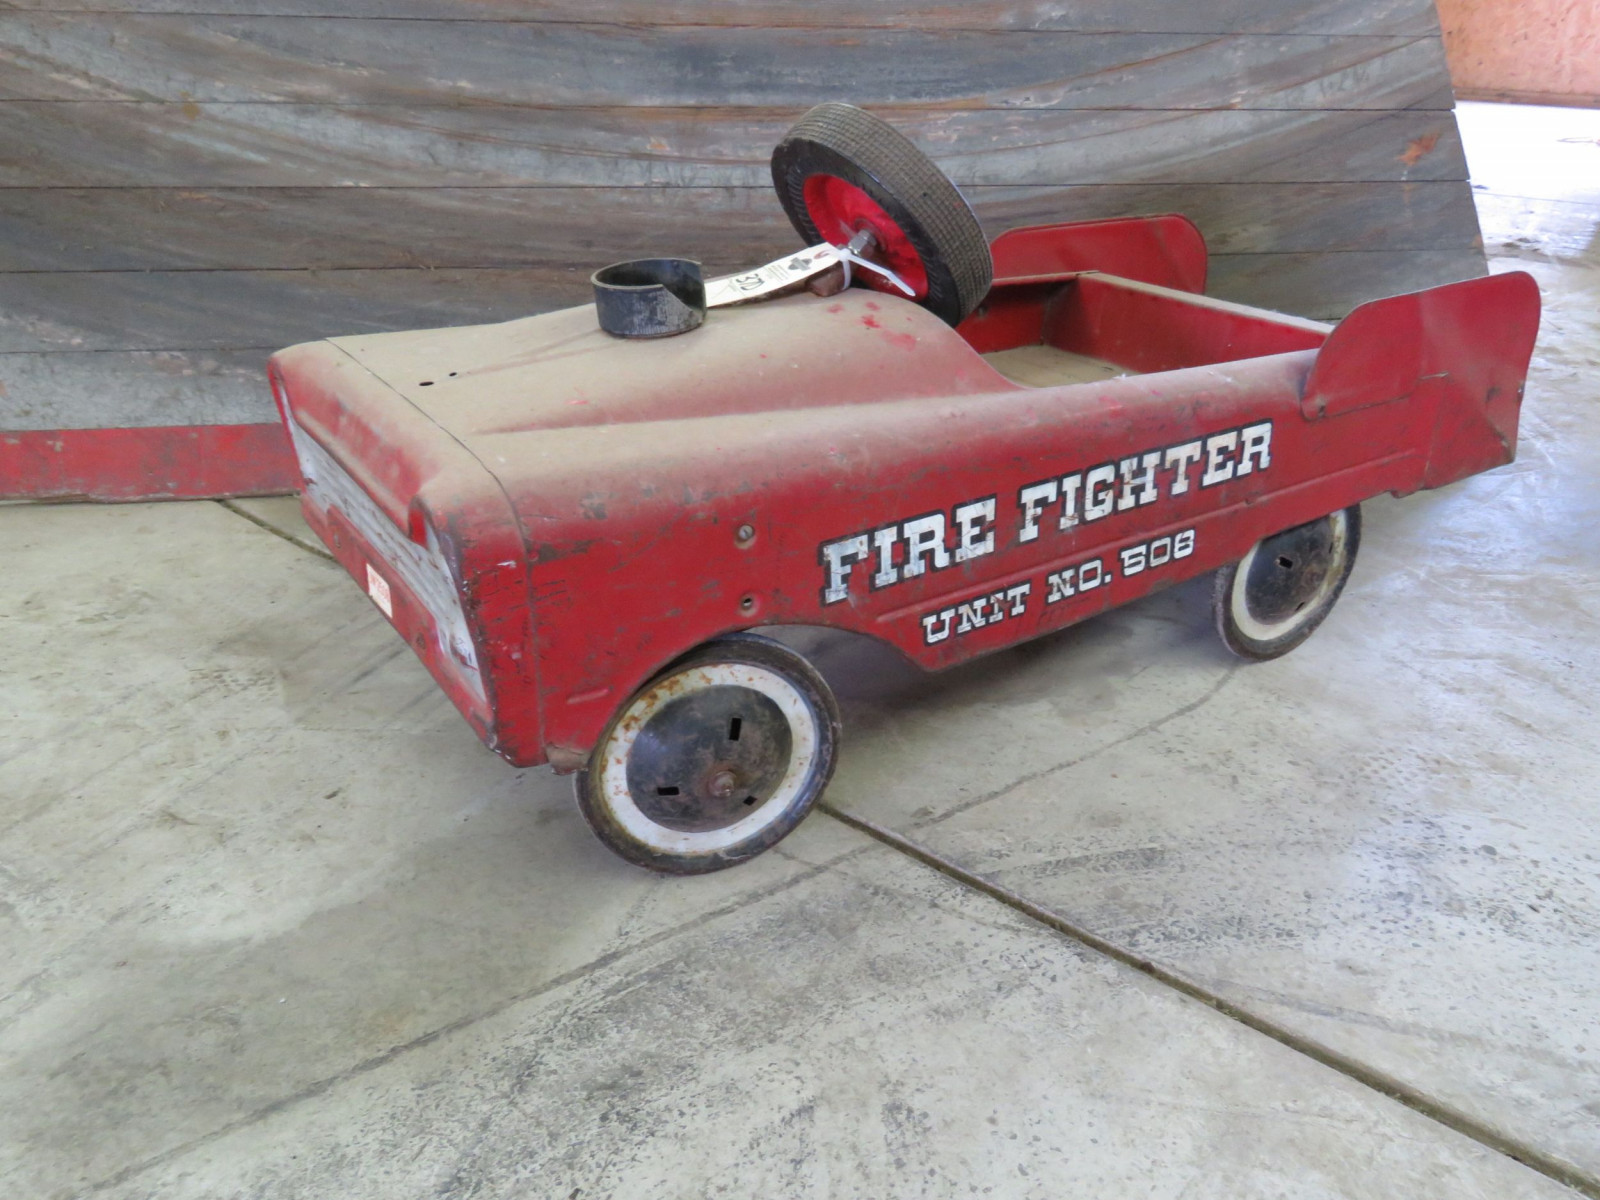 Steel craft Fire Fighter #508 Pedal Car - Image 1